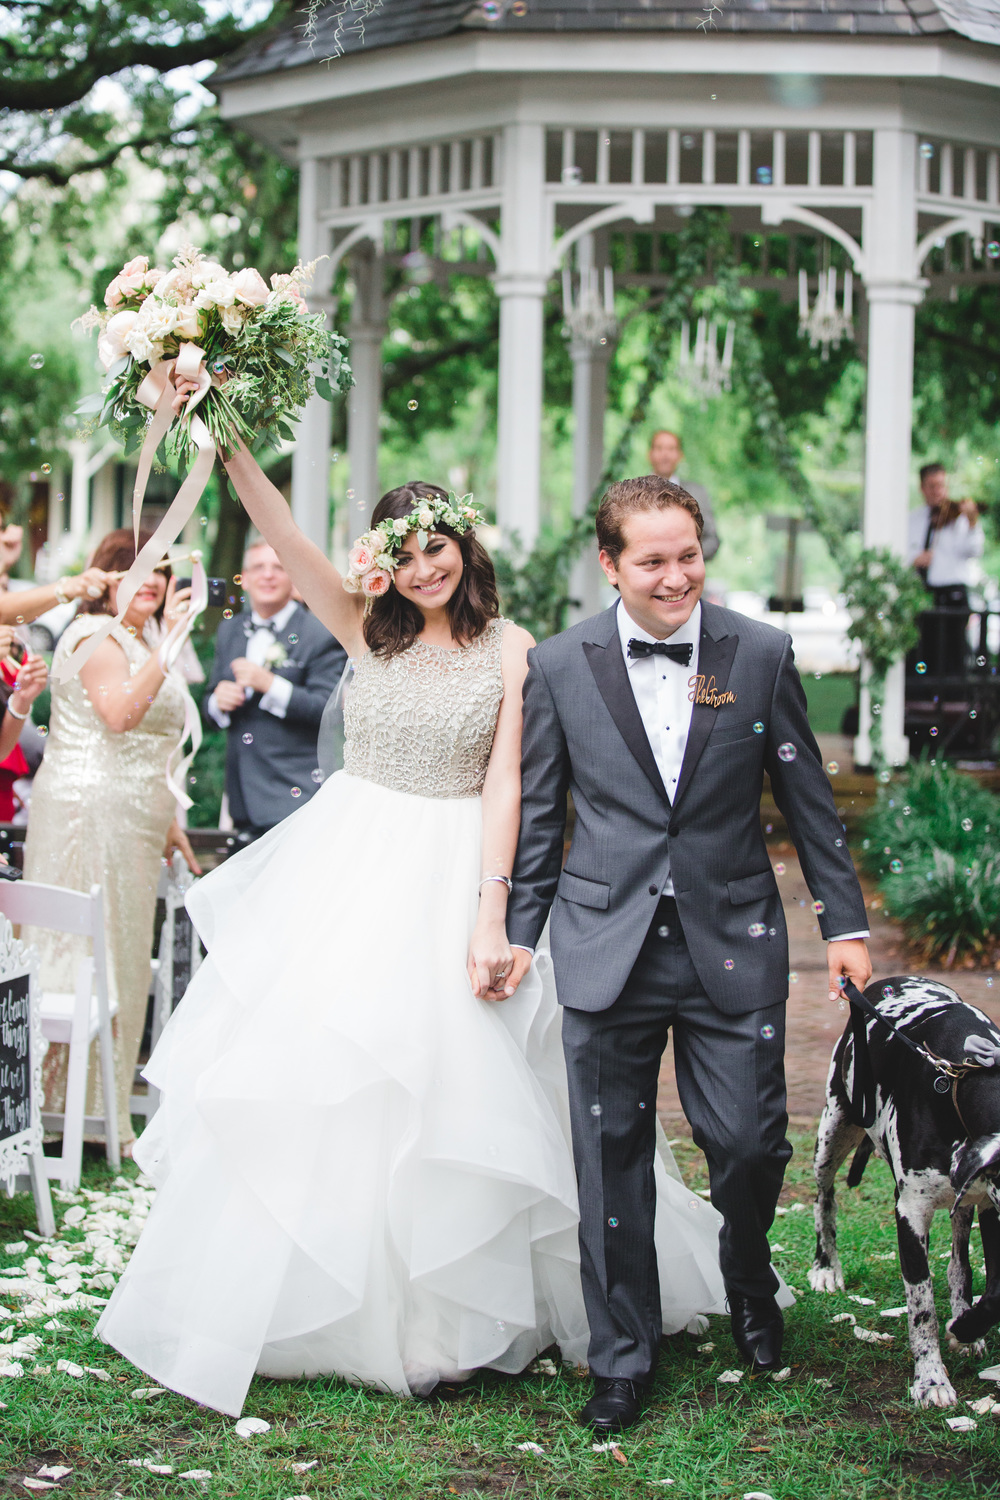 daniela-and-pedro-wedding-izzy-hudgins-photography-a-to-zinnias-whitfield-square-charles-h-morris-center-wedding-ivoyy-and-beau-bridal-boutique-dorie-hayley-paige-savannah-wedding-planner-savannah-bridal-boutique-savannah-weddings-30.jpg